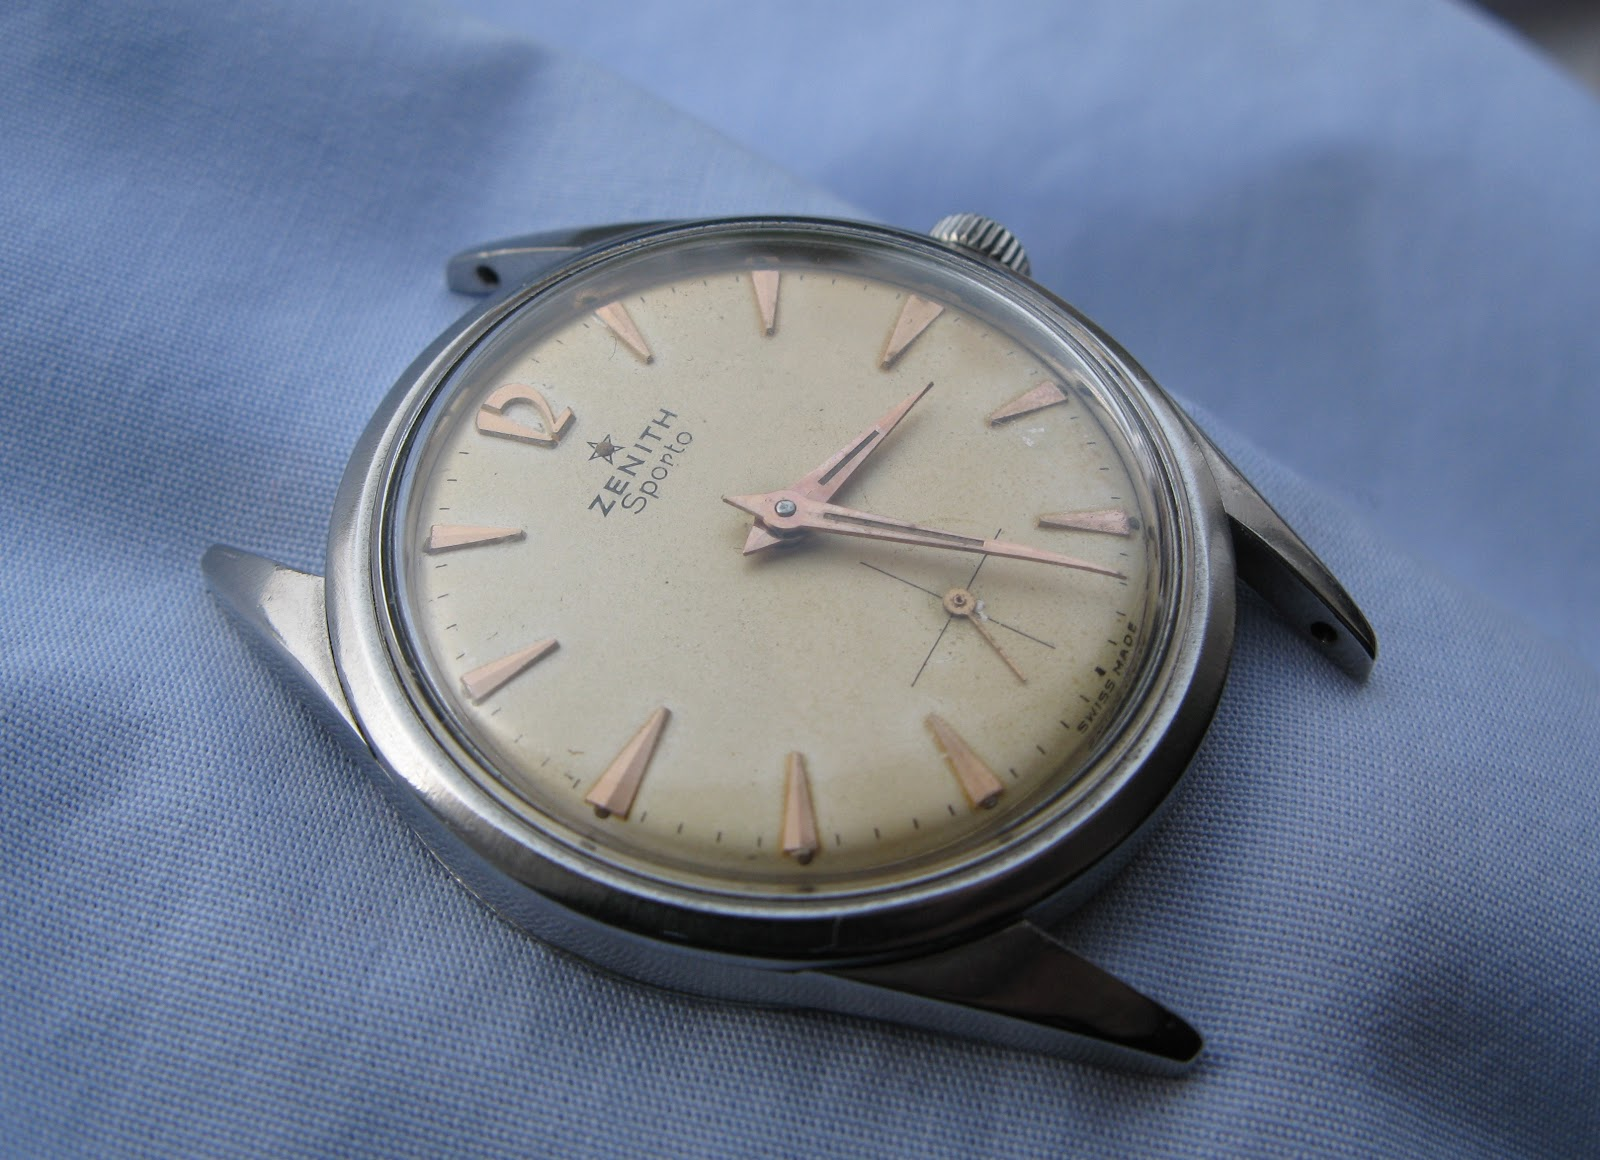 Andy B Vintage Watches: FOR SALE - Early 1960's Zenith ...